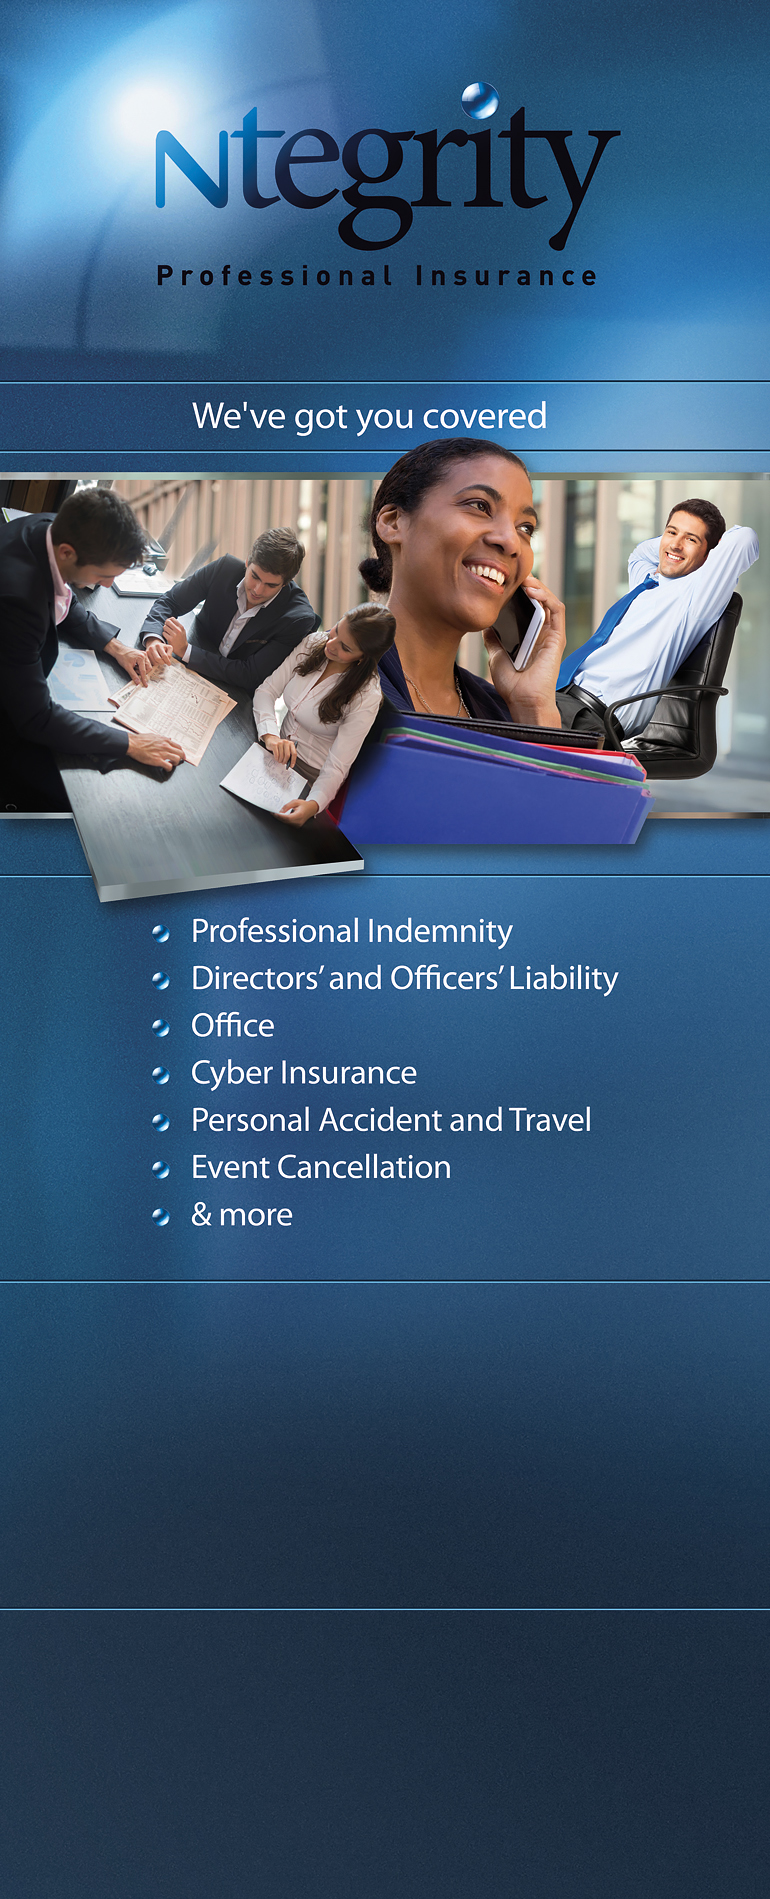 image of a Ntegrity Professional Insurance banner stand